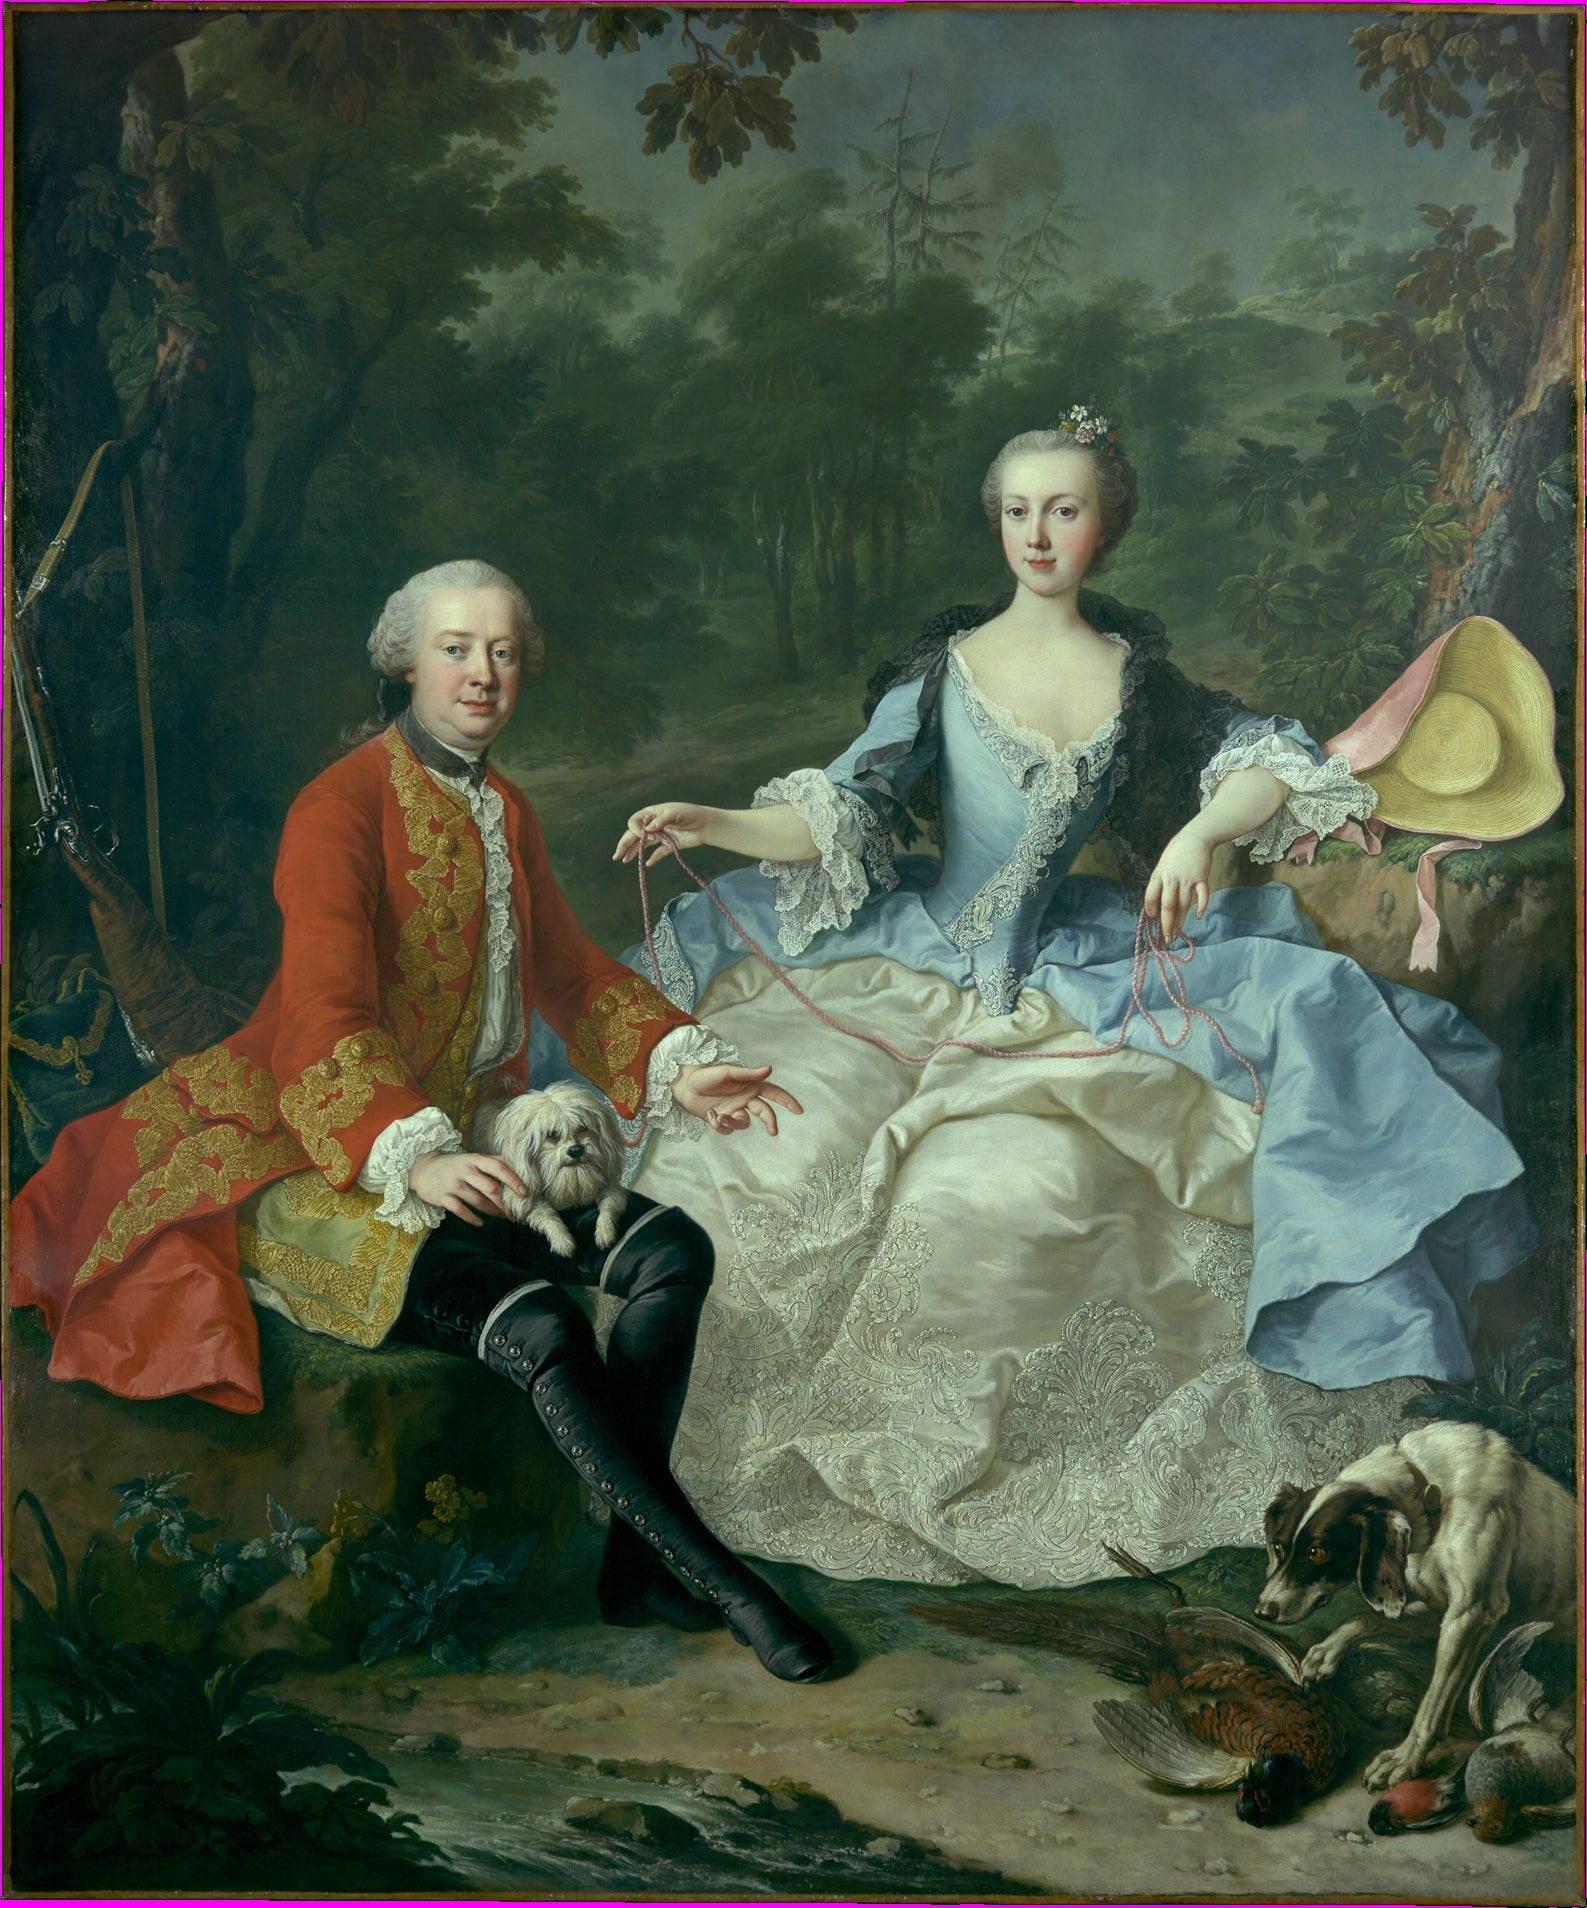 Painting by Martin van Meytens the Younger